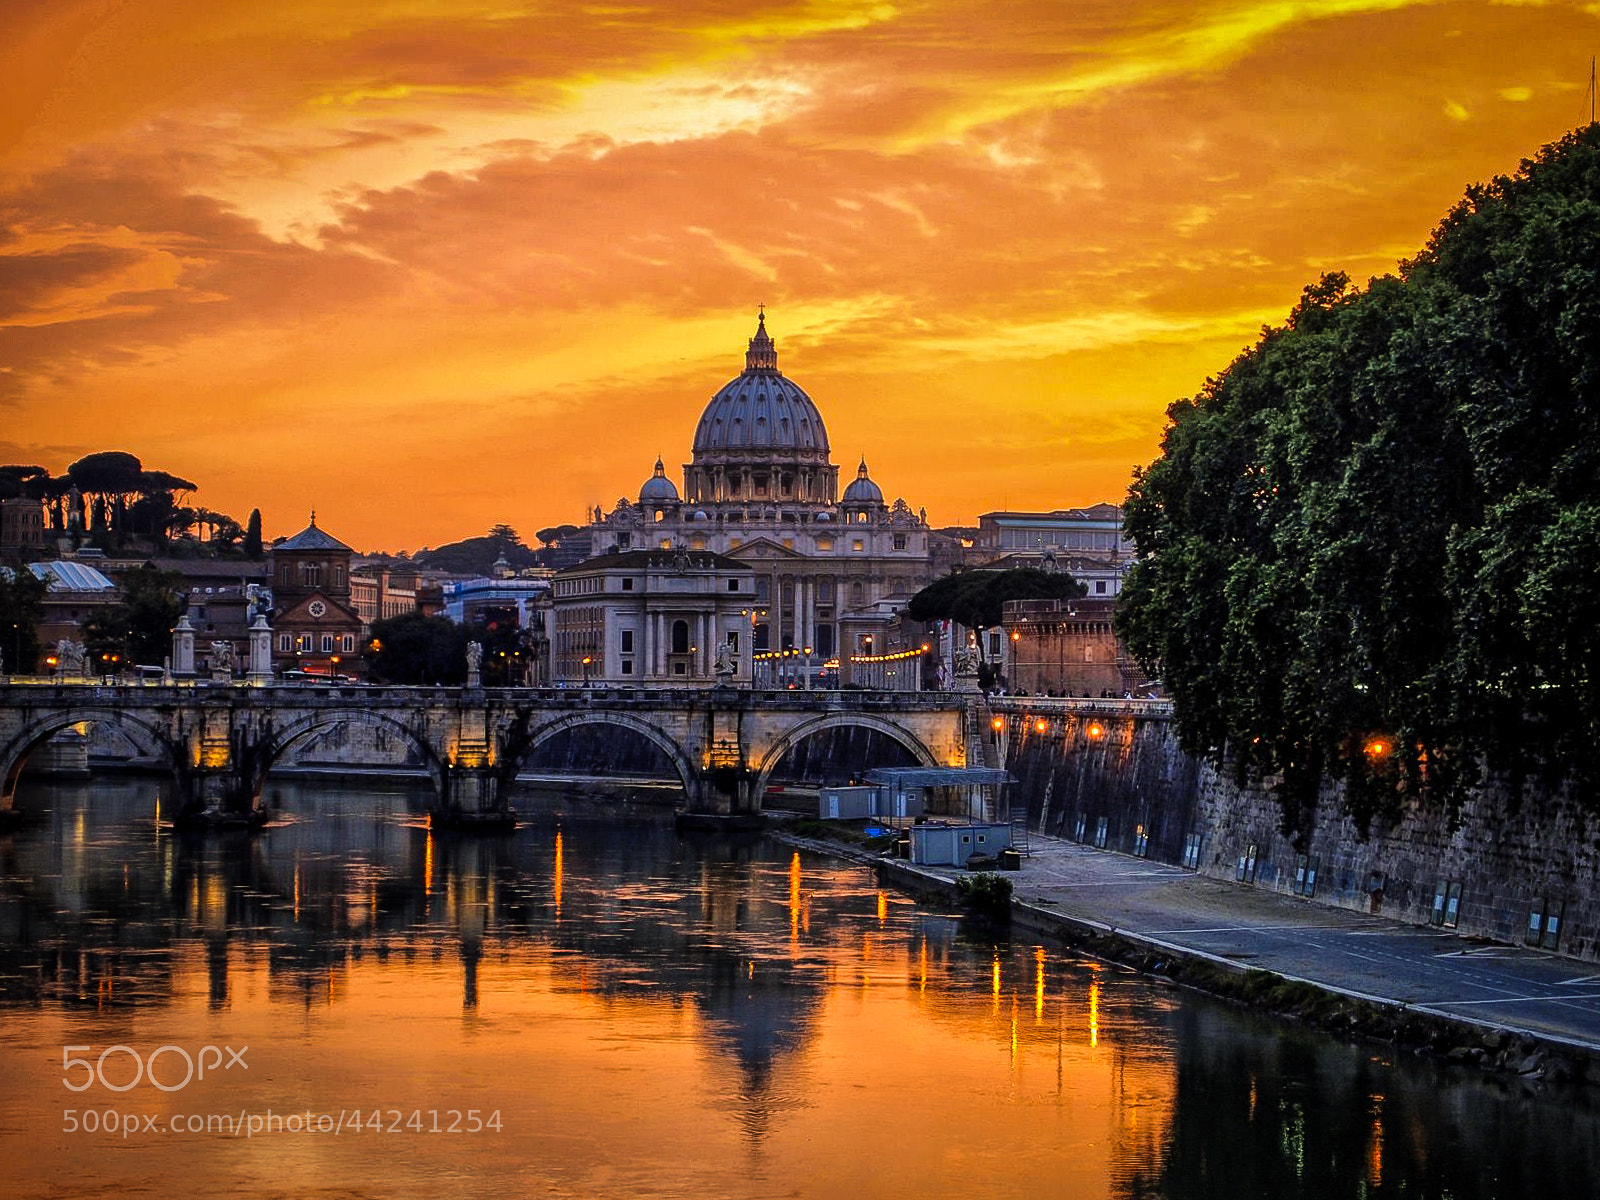 Photograph Saint Peter Basilica by Antonio Dabraio on 500px